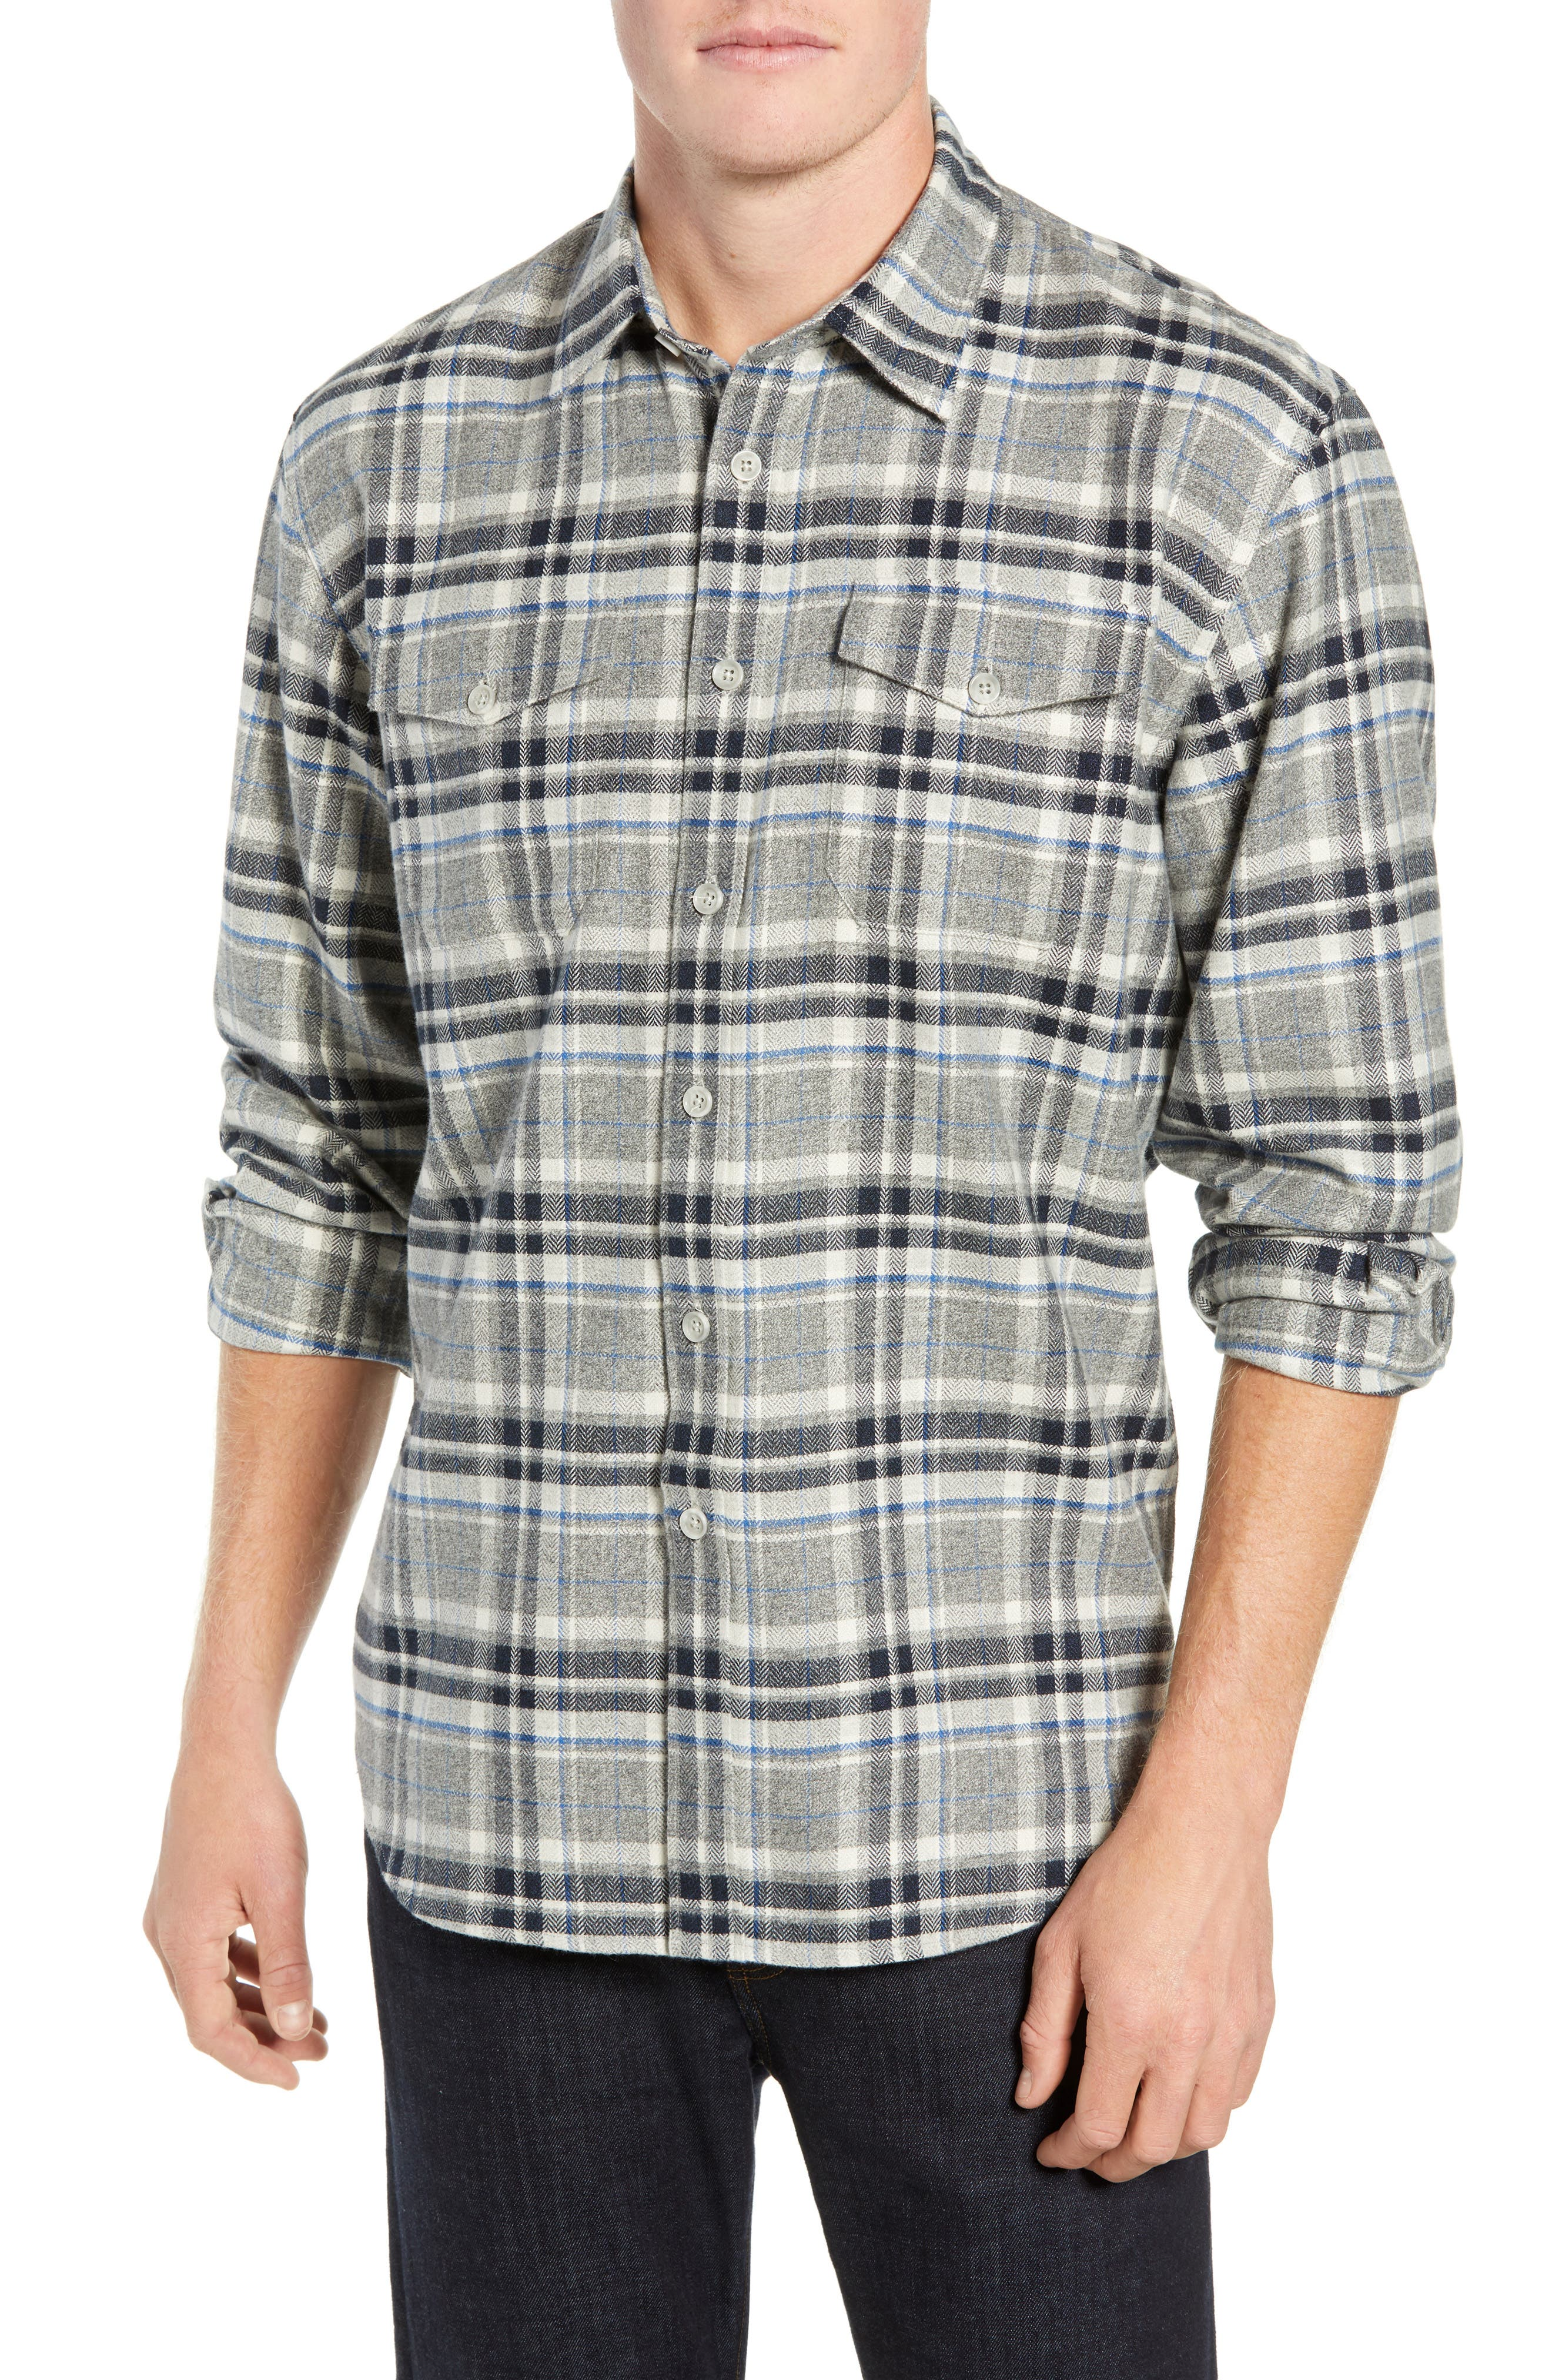 Coastaoro Arungton Regular Fit Flannel Shirt